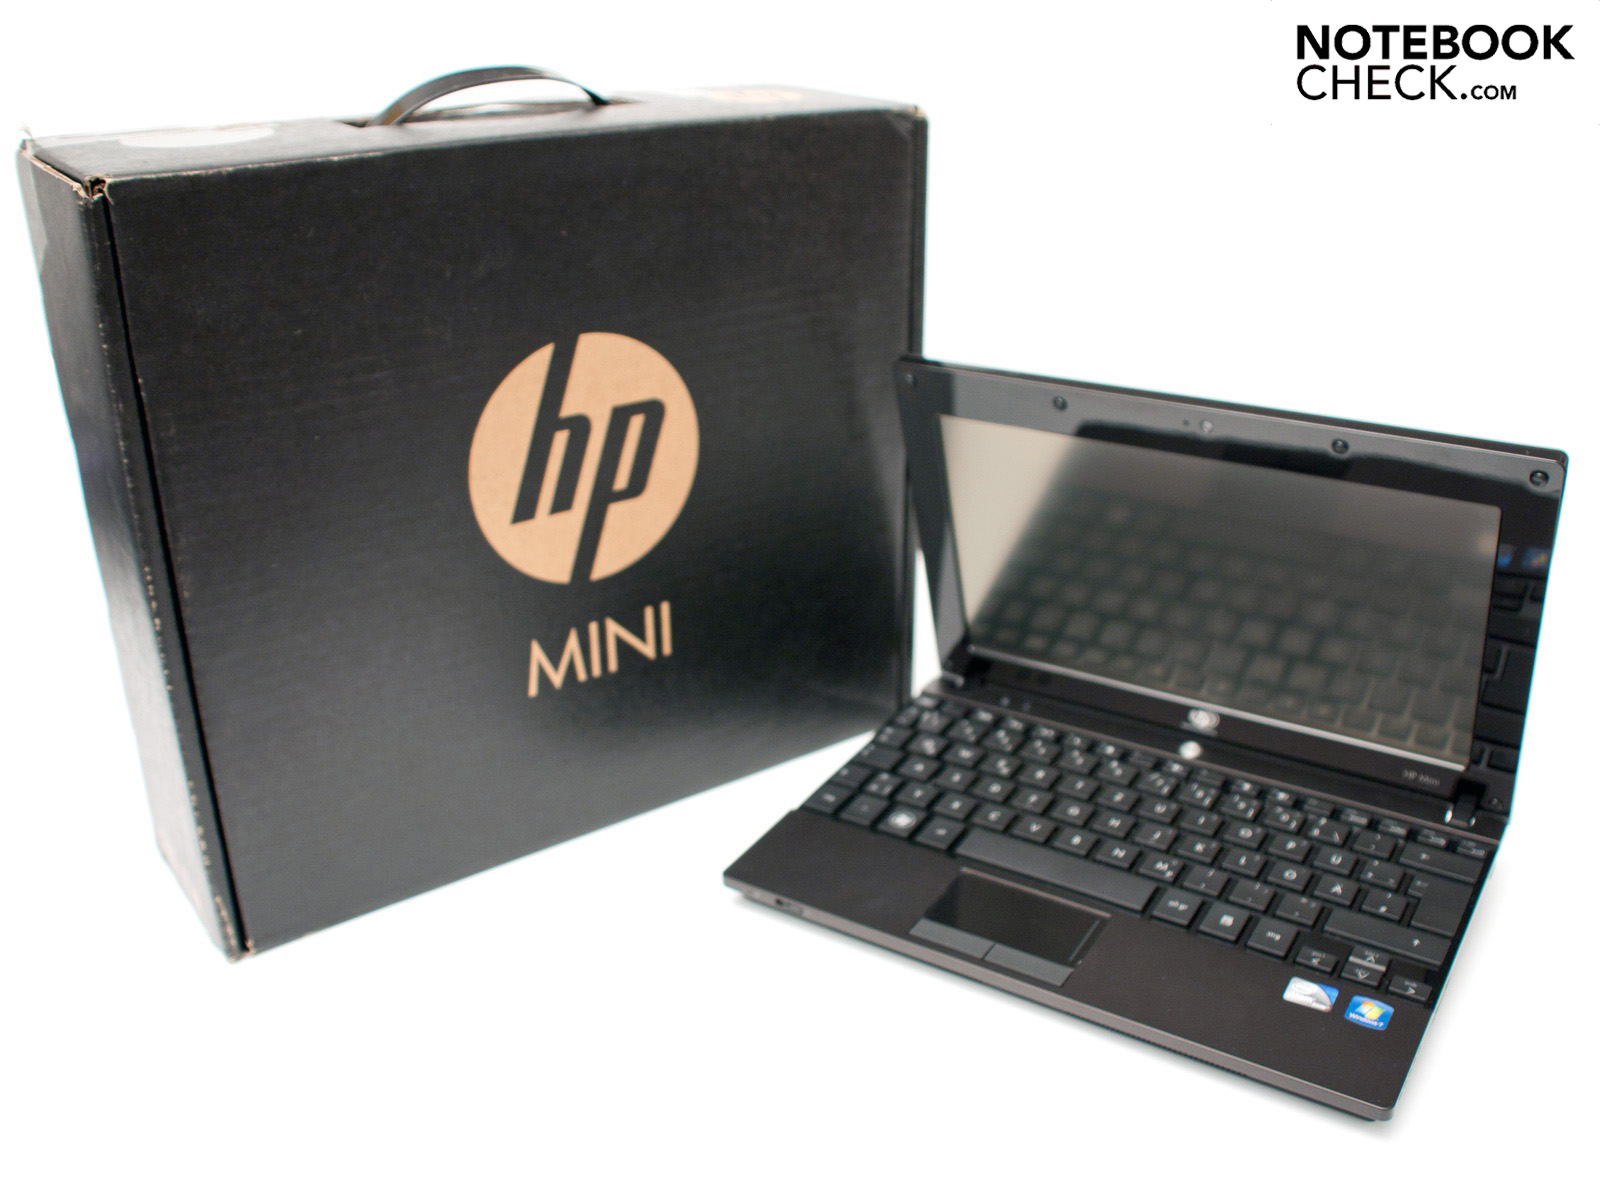 HP MINI 1131TU SMSC LAN DRIVER FOR WINDOWS MAC